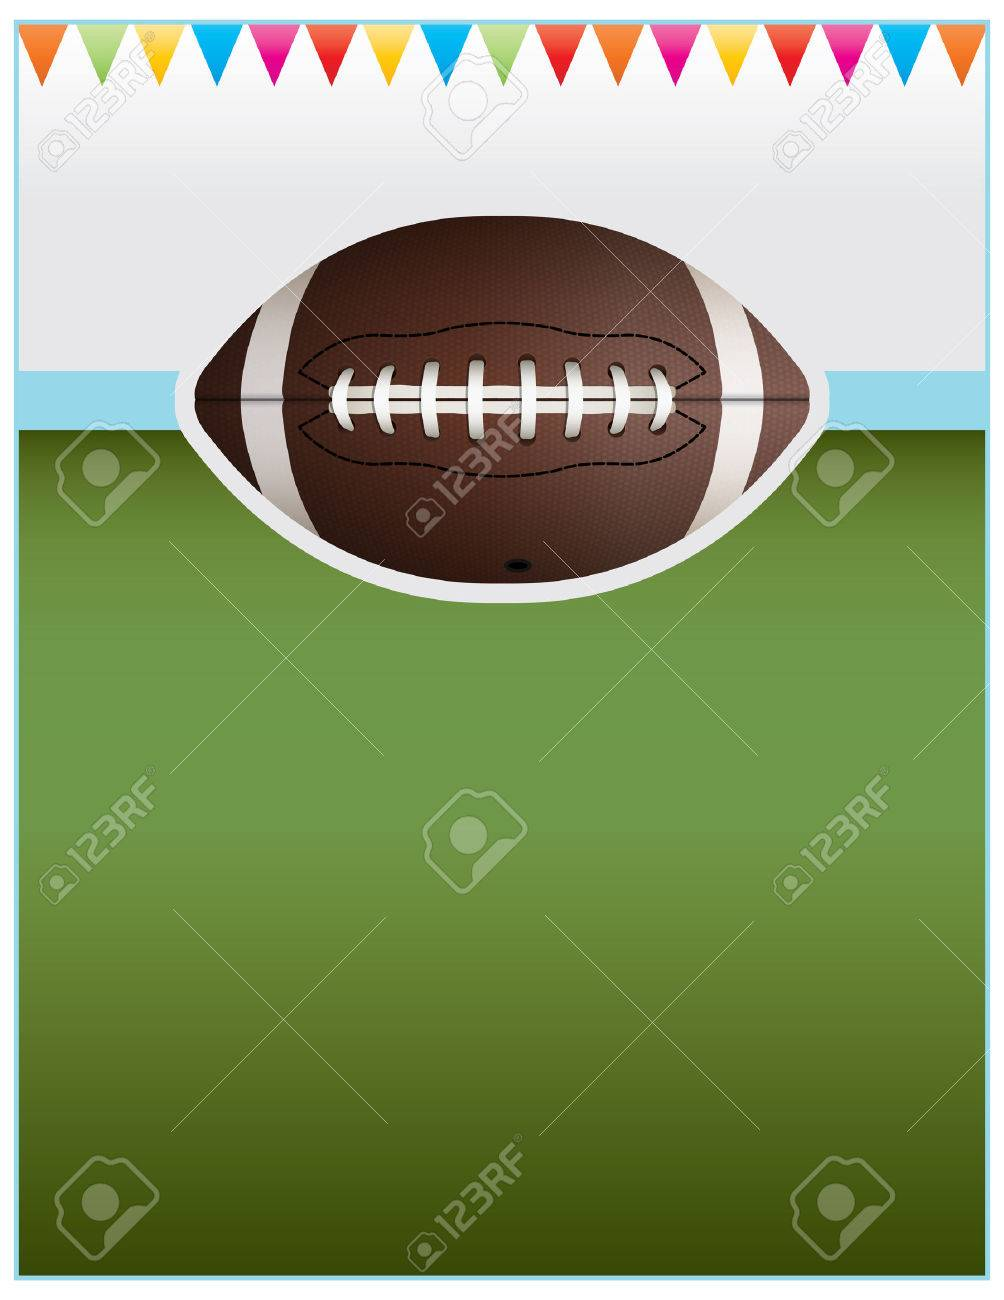 A Flyer Background Design Perfect For Tailgate Parties Football